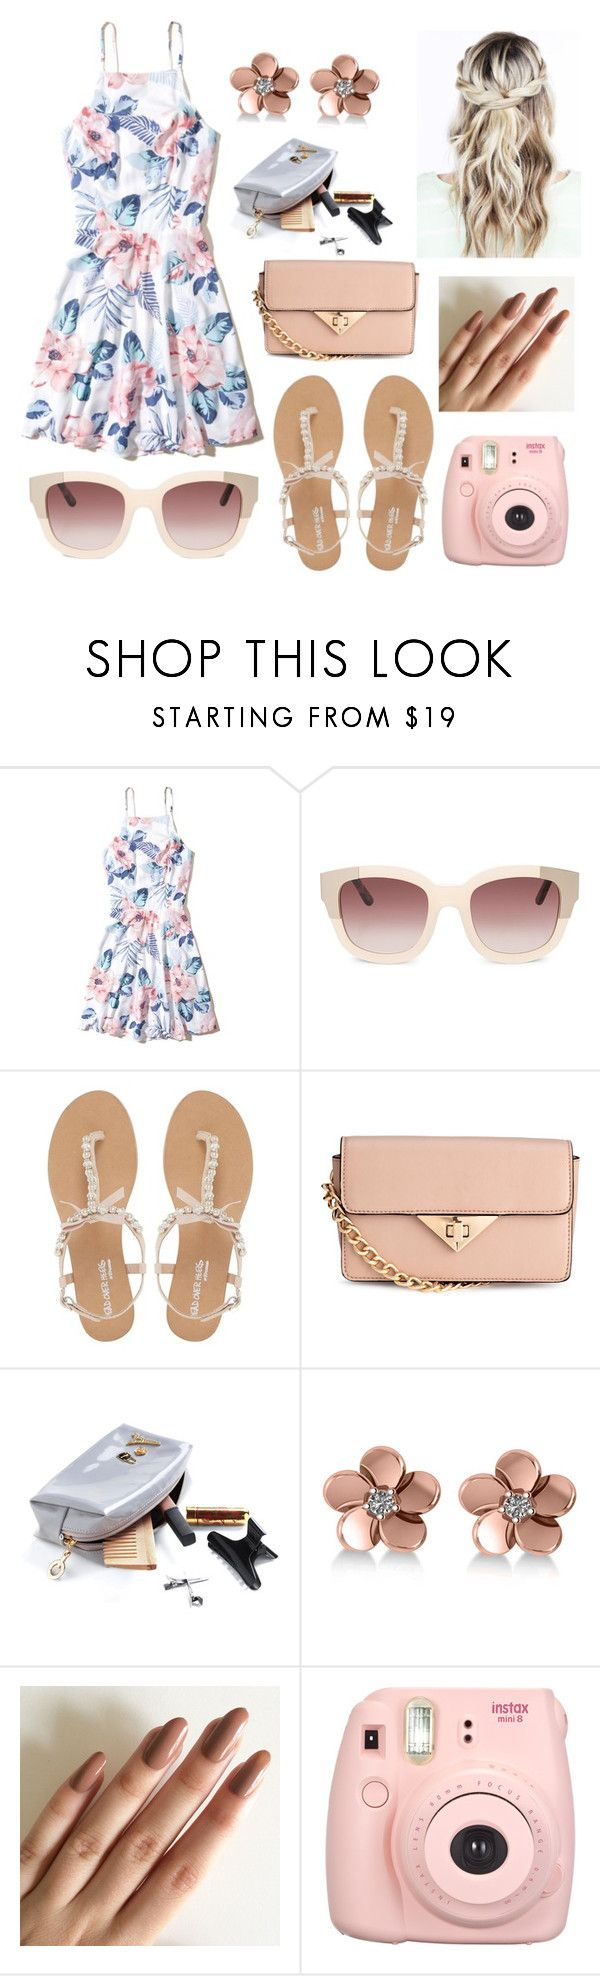 """Untitled #298"" by doggydoo346 ❤ liked on Polyvore featuring Hollister Co., Head Over Heels by Dune, H&M, Allurez, Fujifilm and doggydoo346"